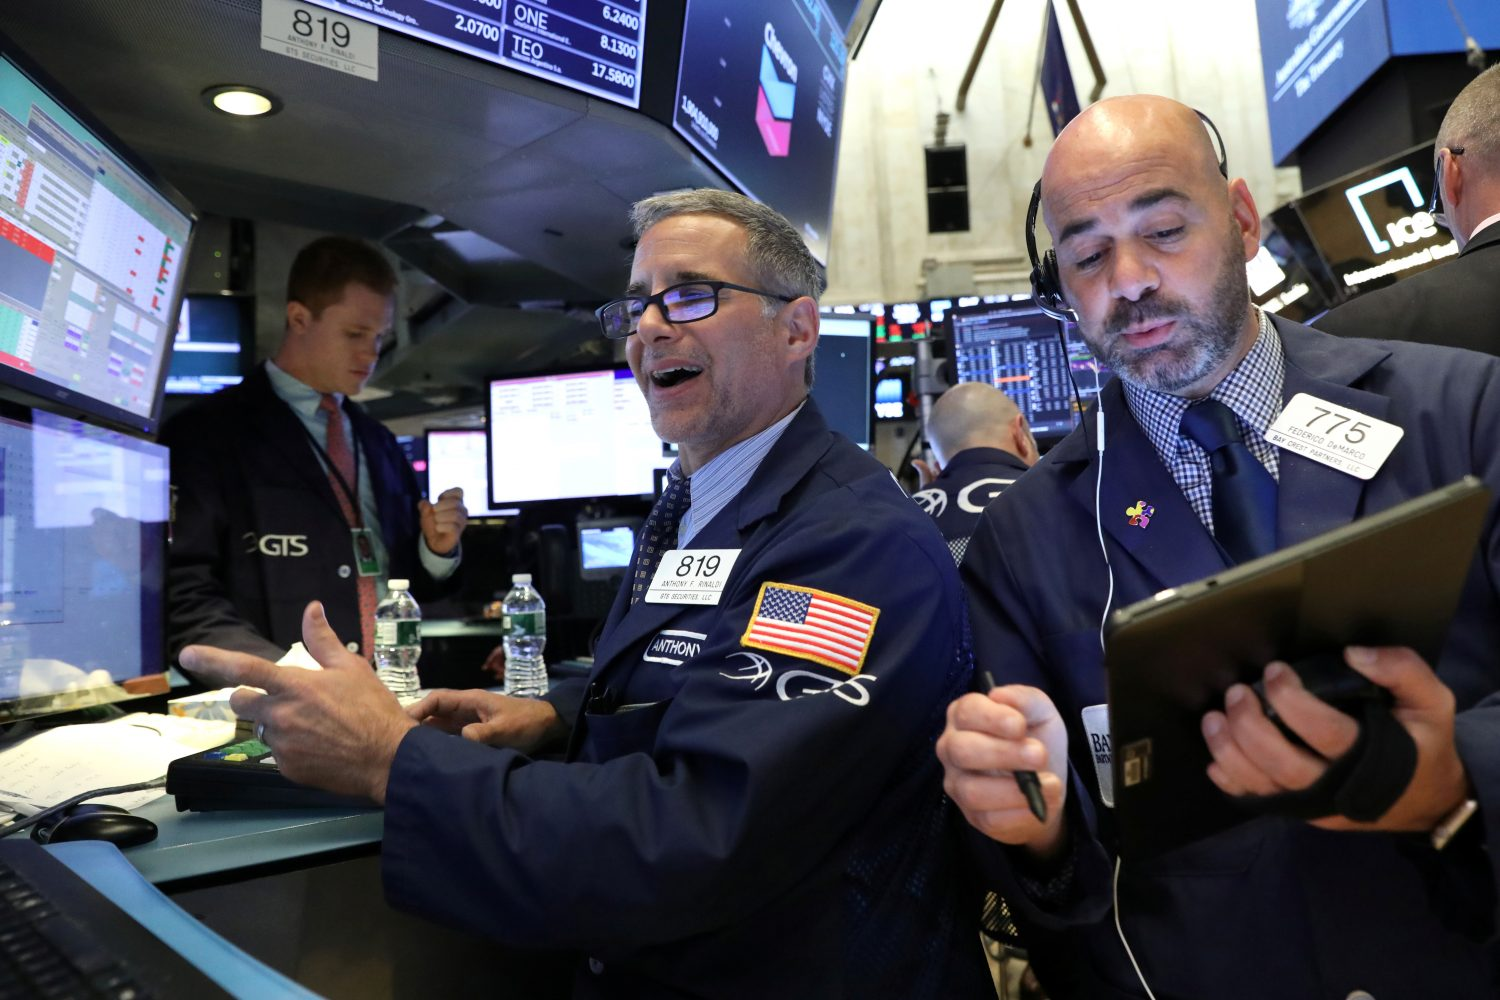 FILE PHOTO: Traders work on the floor at the New York Stock Exchange (NYSE) in New York, U.S., June 19, 2019. REUTERS/Brendan McDermid/File Photo